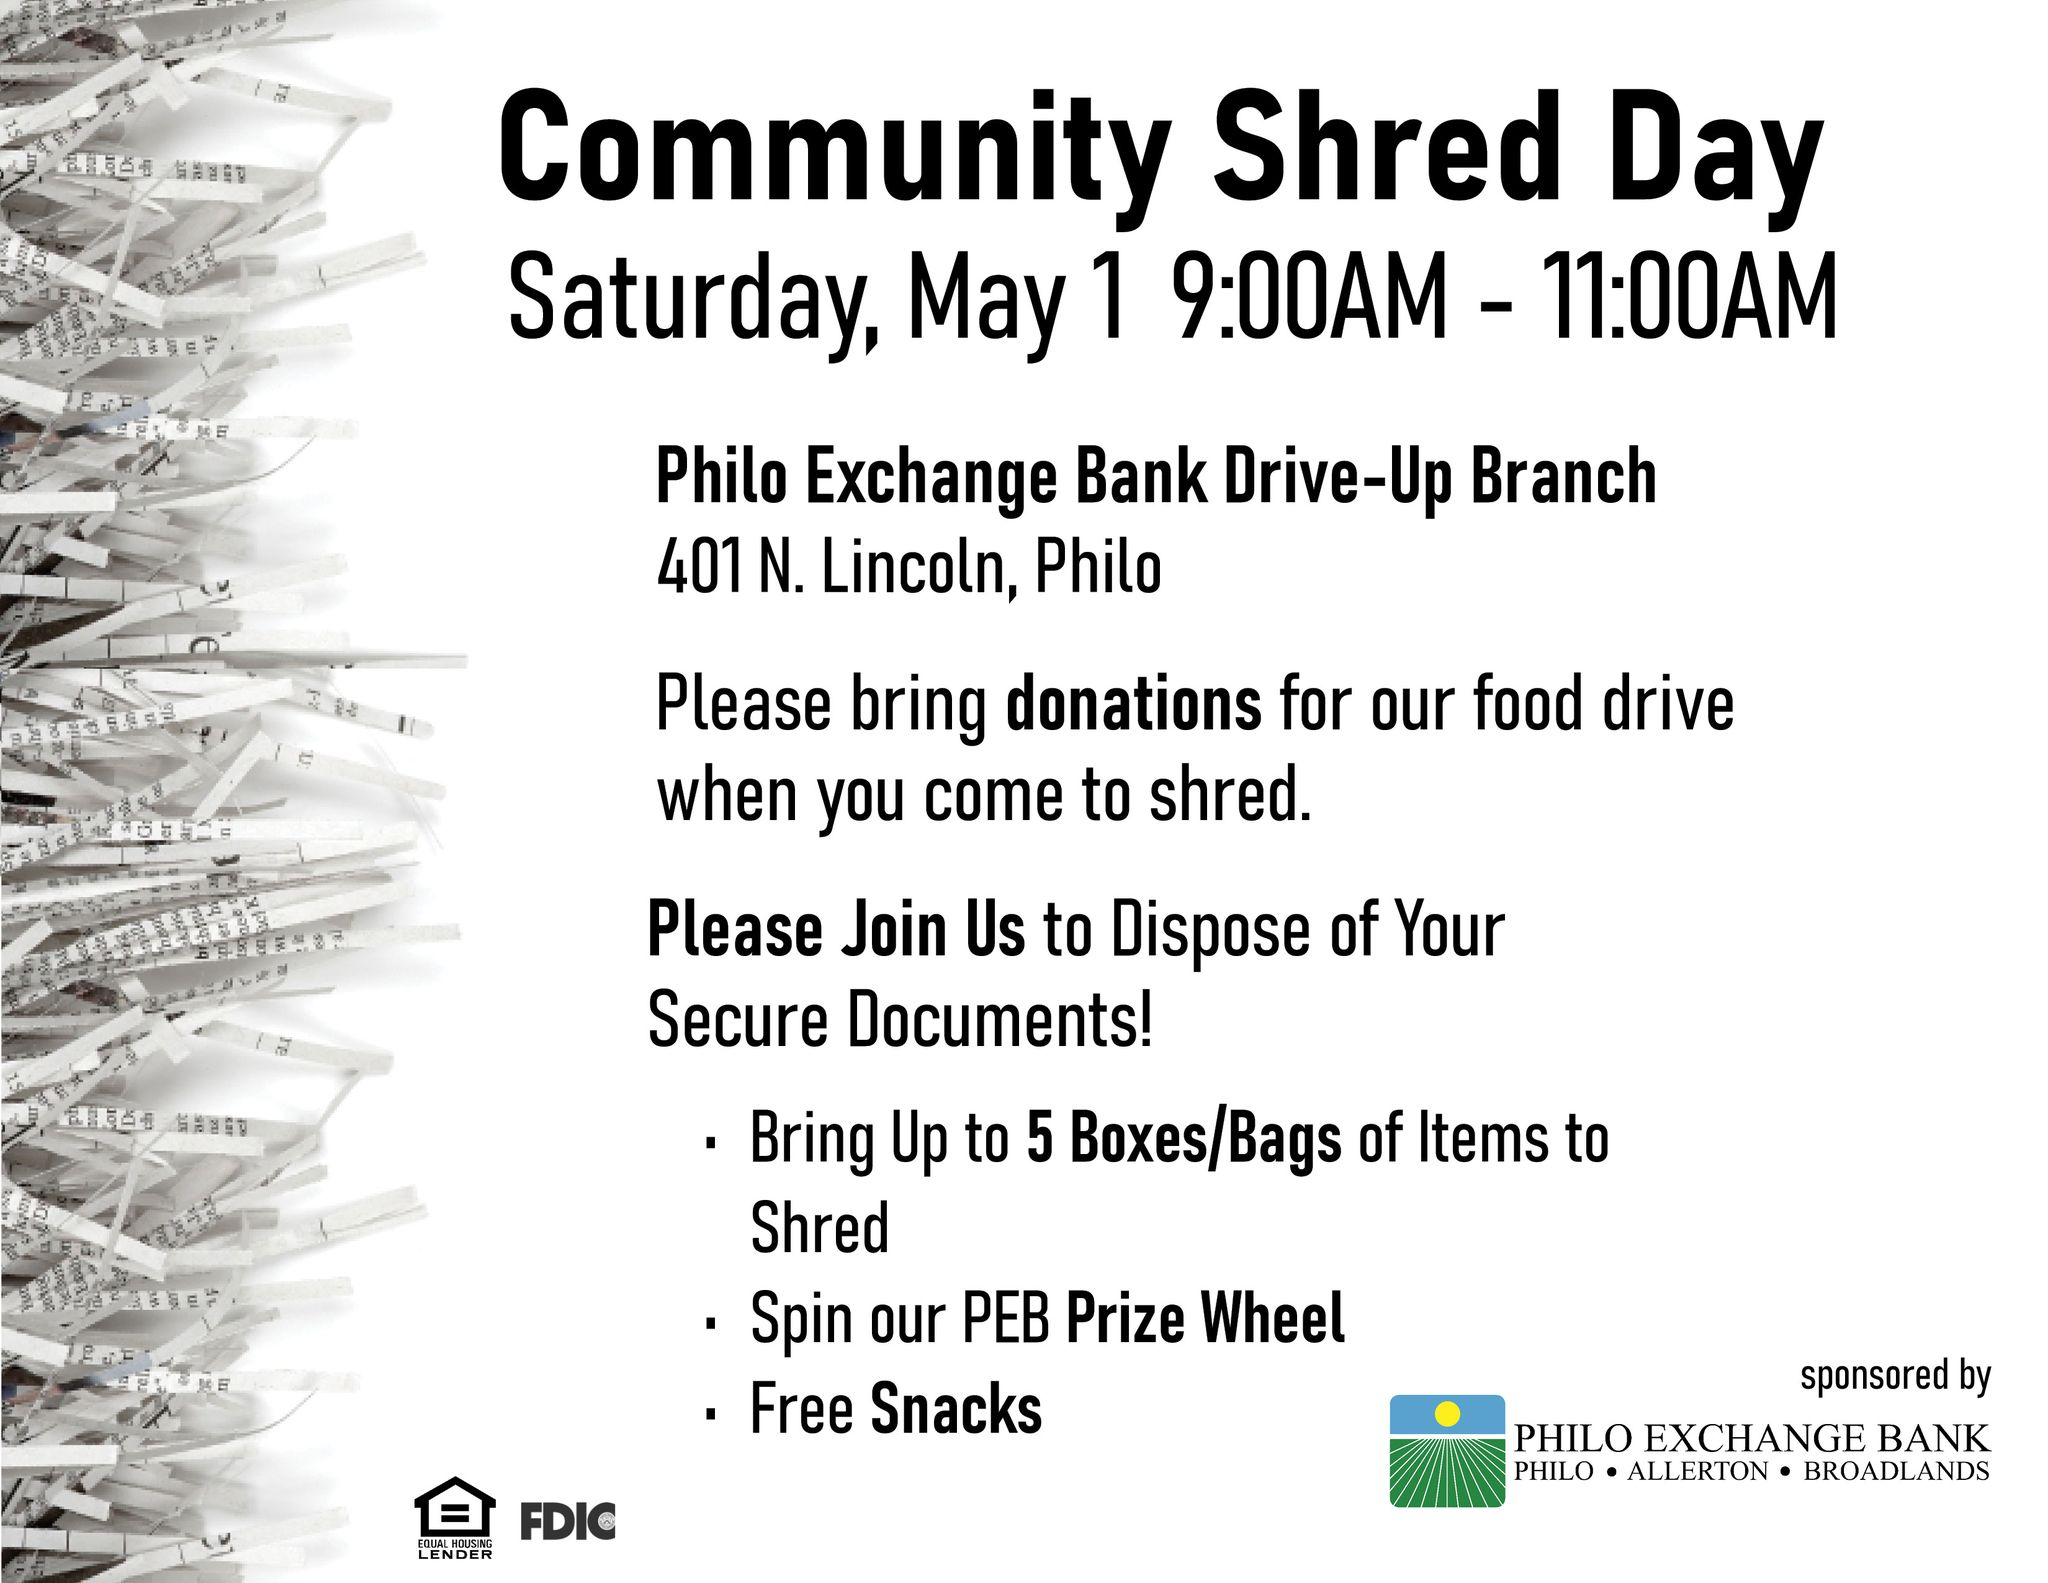 Community shred day in Philo